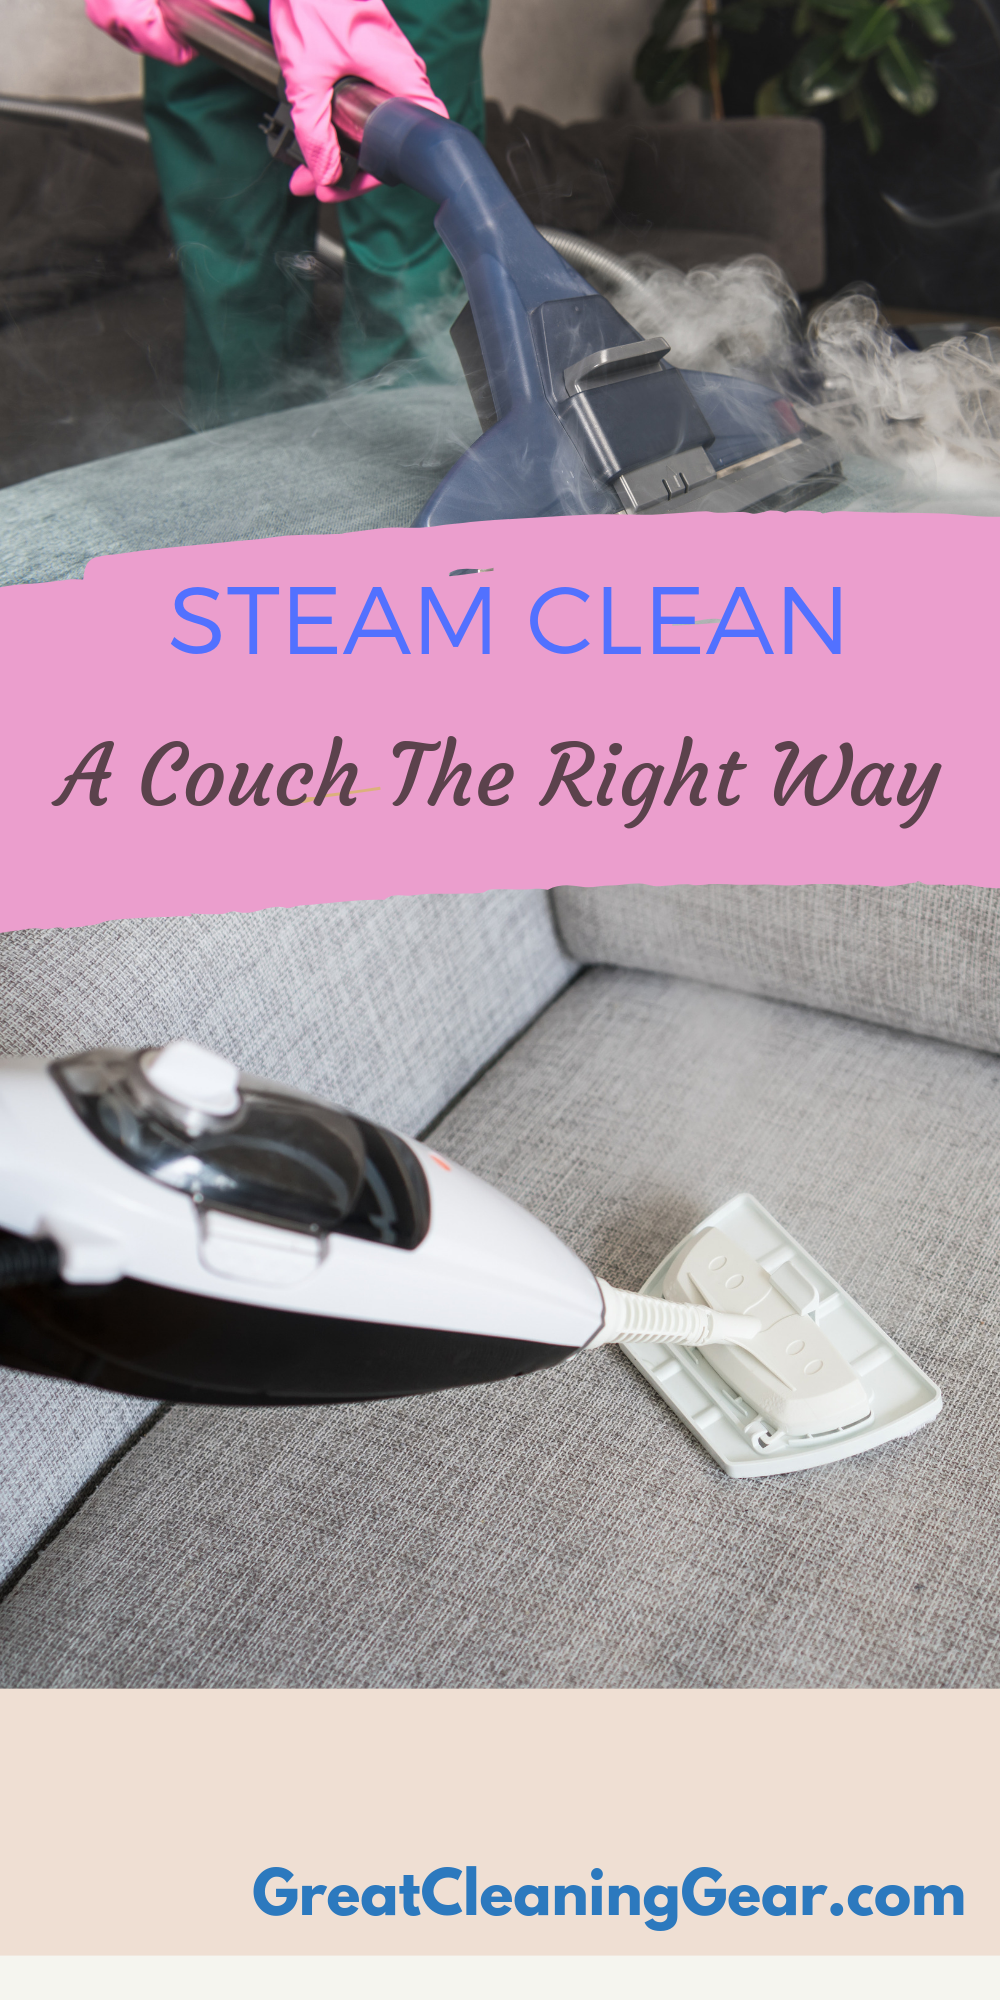 How To Use A Steam Cleaner On A Couch Clean Couch Steam Clean